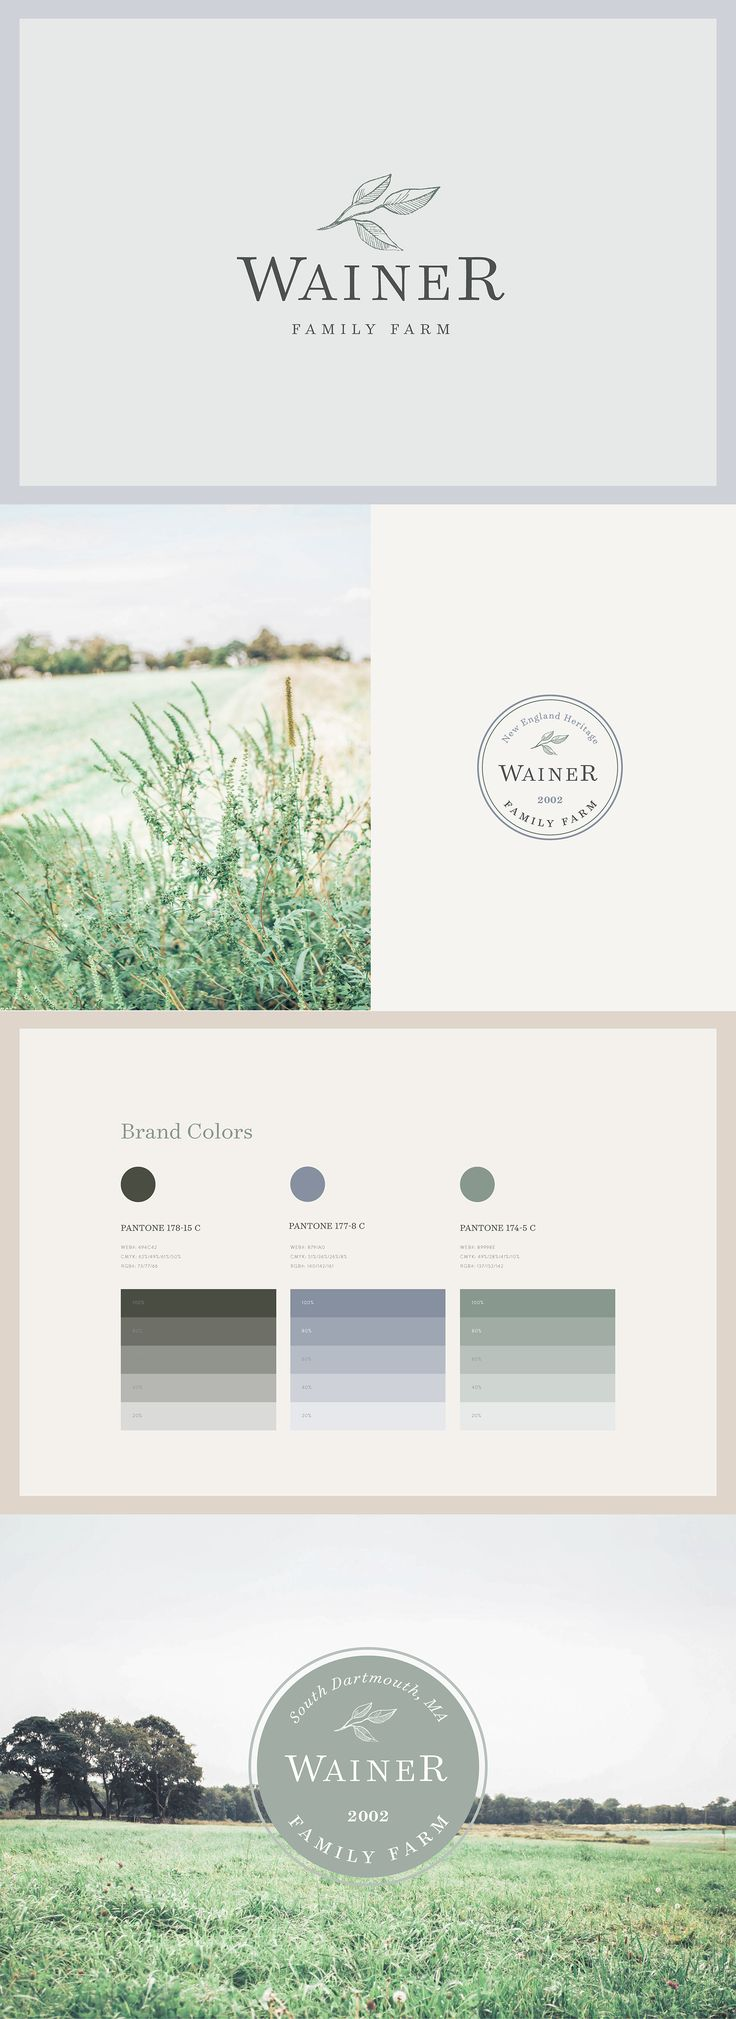 Meg Summerfield Studio | Wainer Family Farm Branding | Heritage New England Logo Design Inspirationen. Benötigst Du ein Logo für Deine Firma oder ein Redesign? Wir helfen Dir weiter. http://www.swisswebwork.ch/